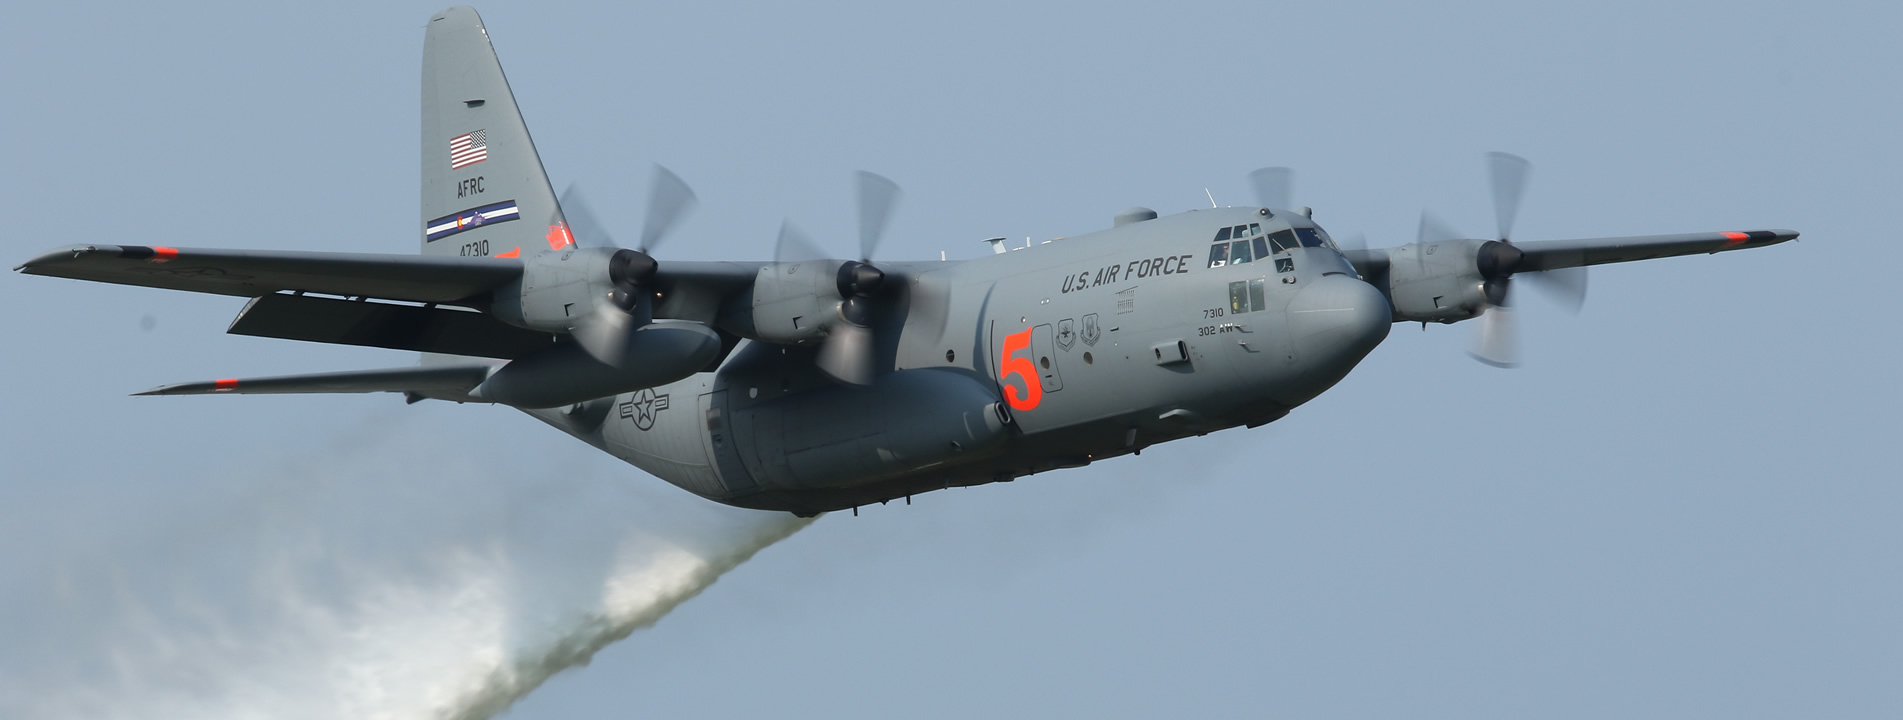 USAF C-130 water bomber